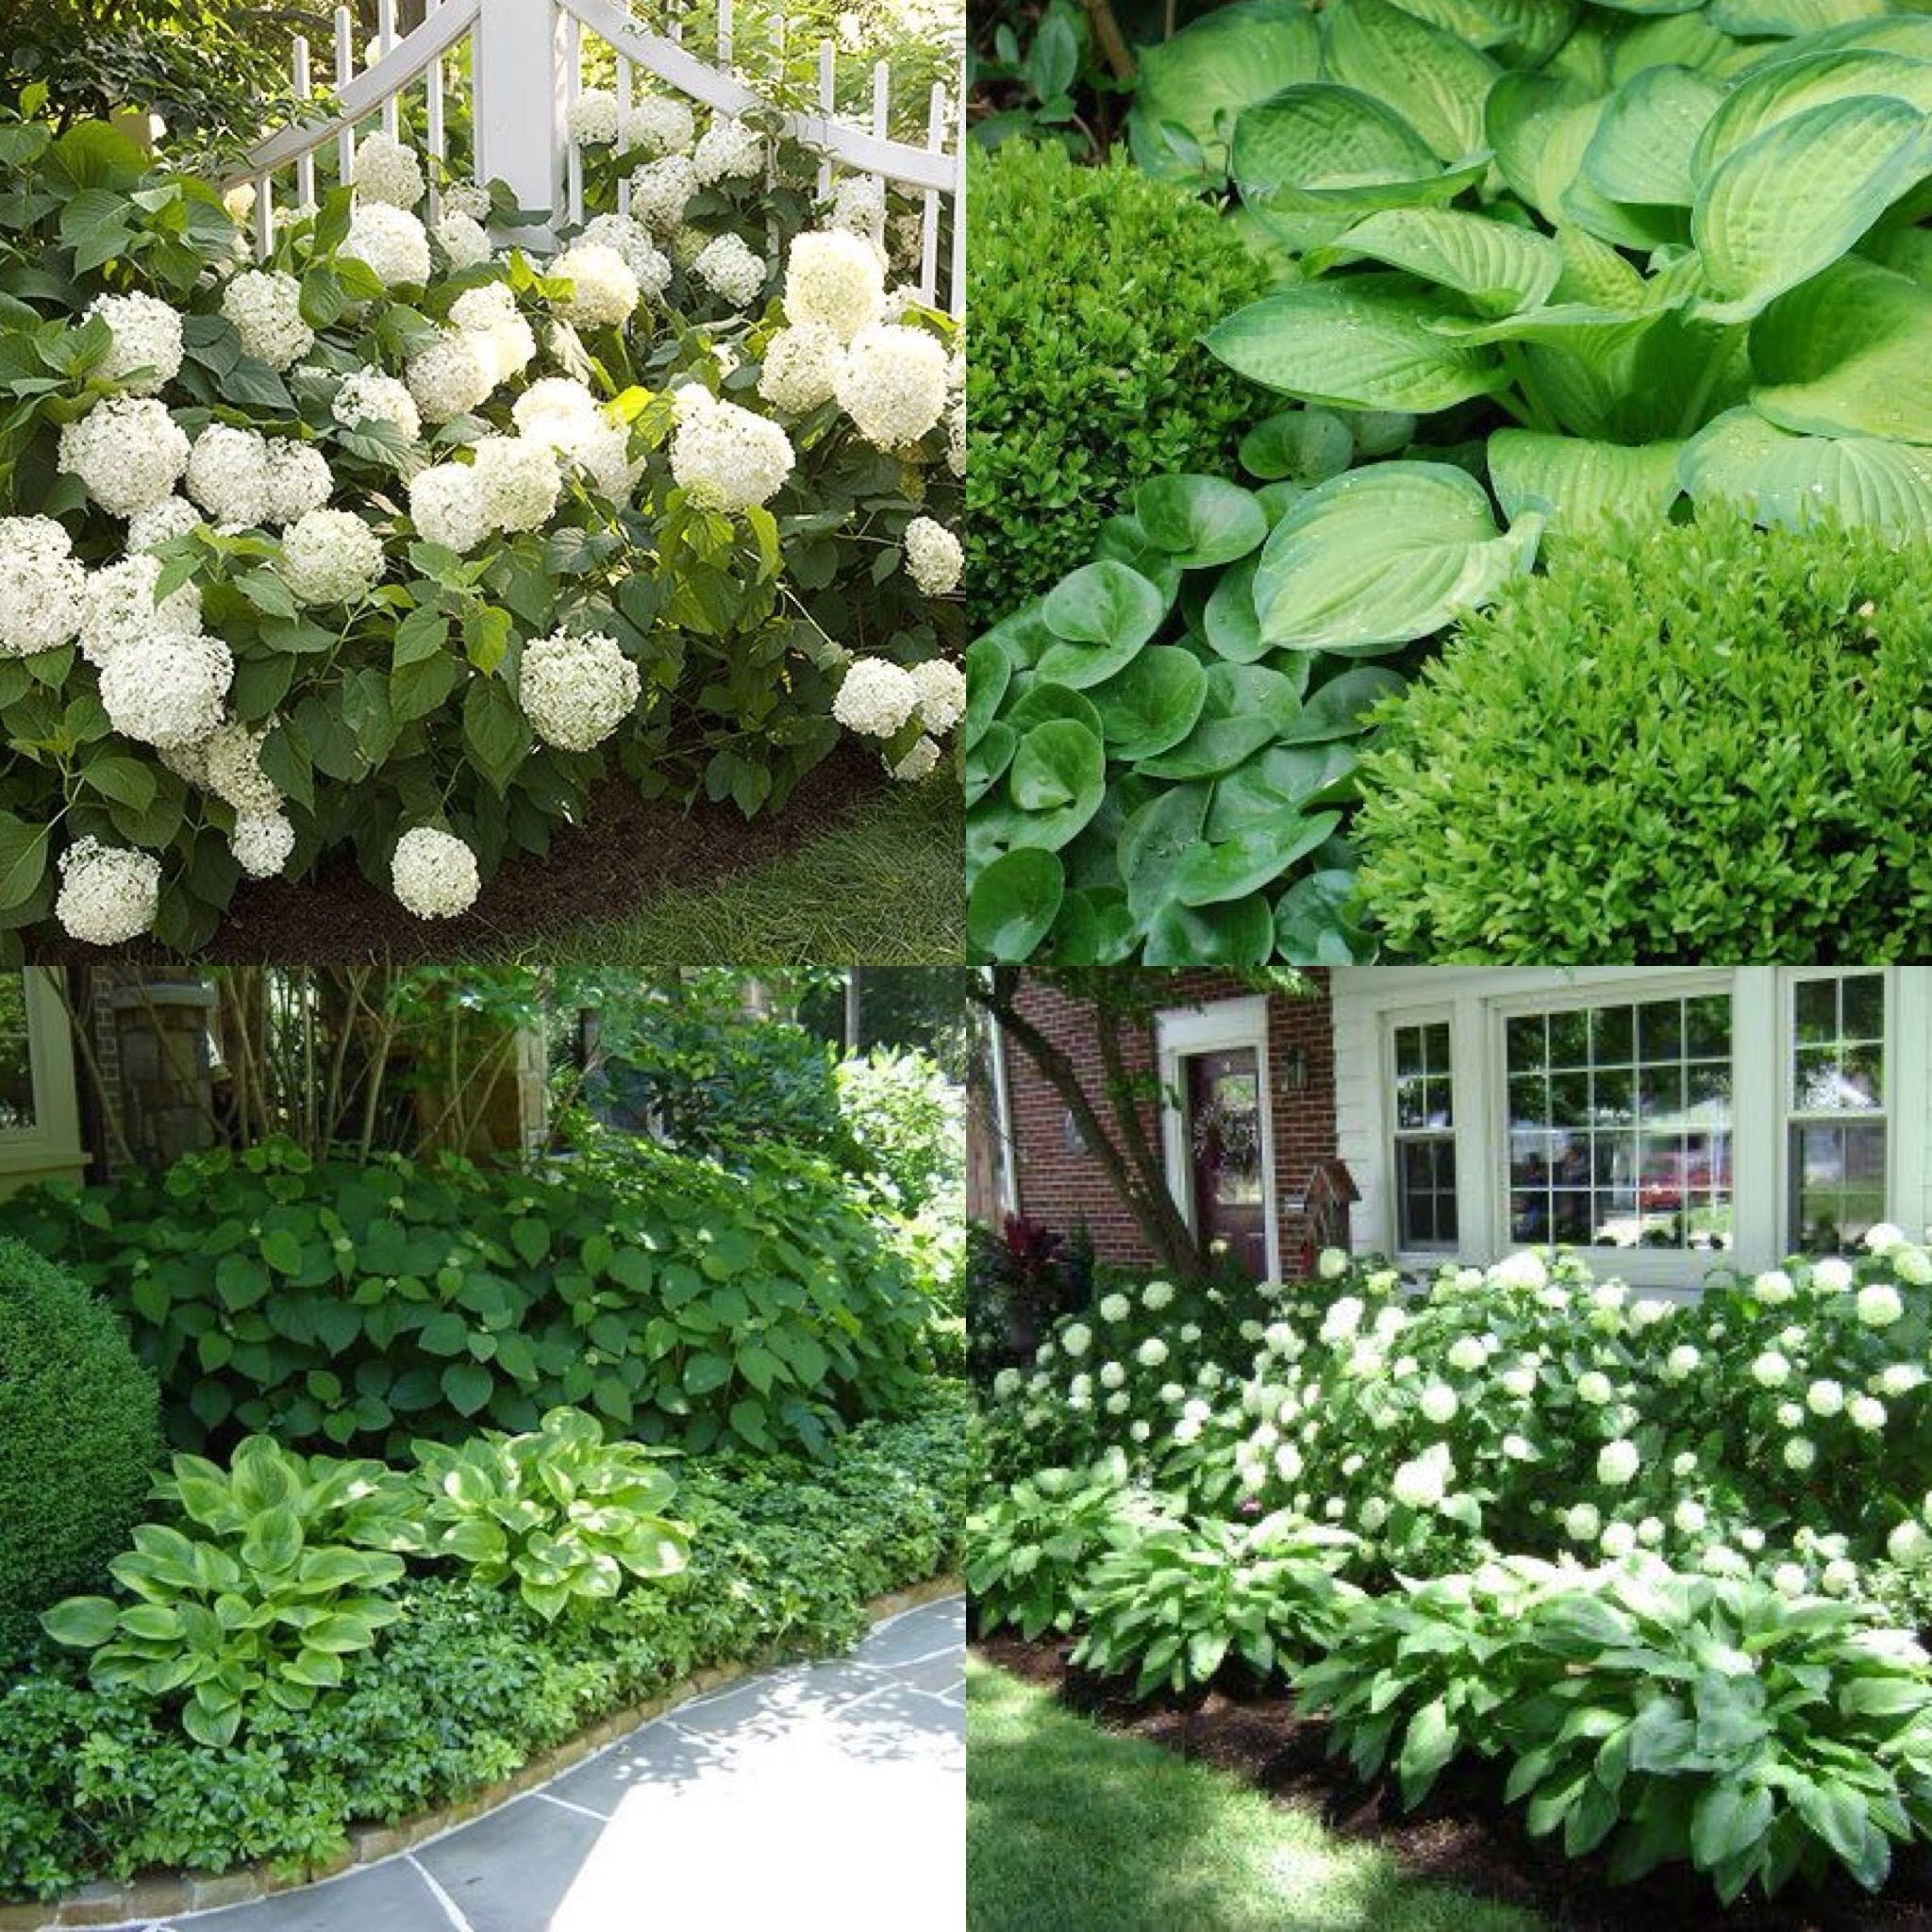 north carolina landscaping ideas - Google Search (With ...